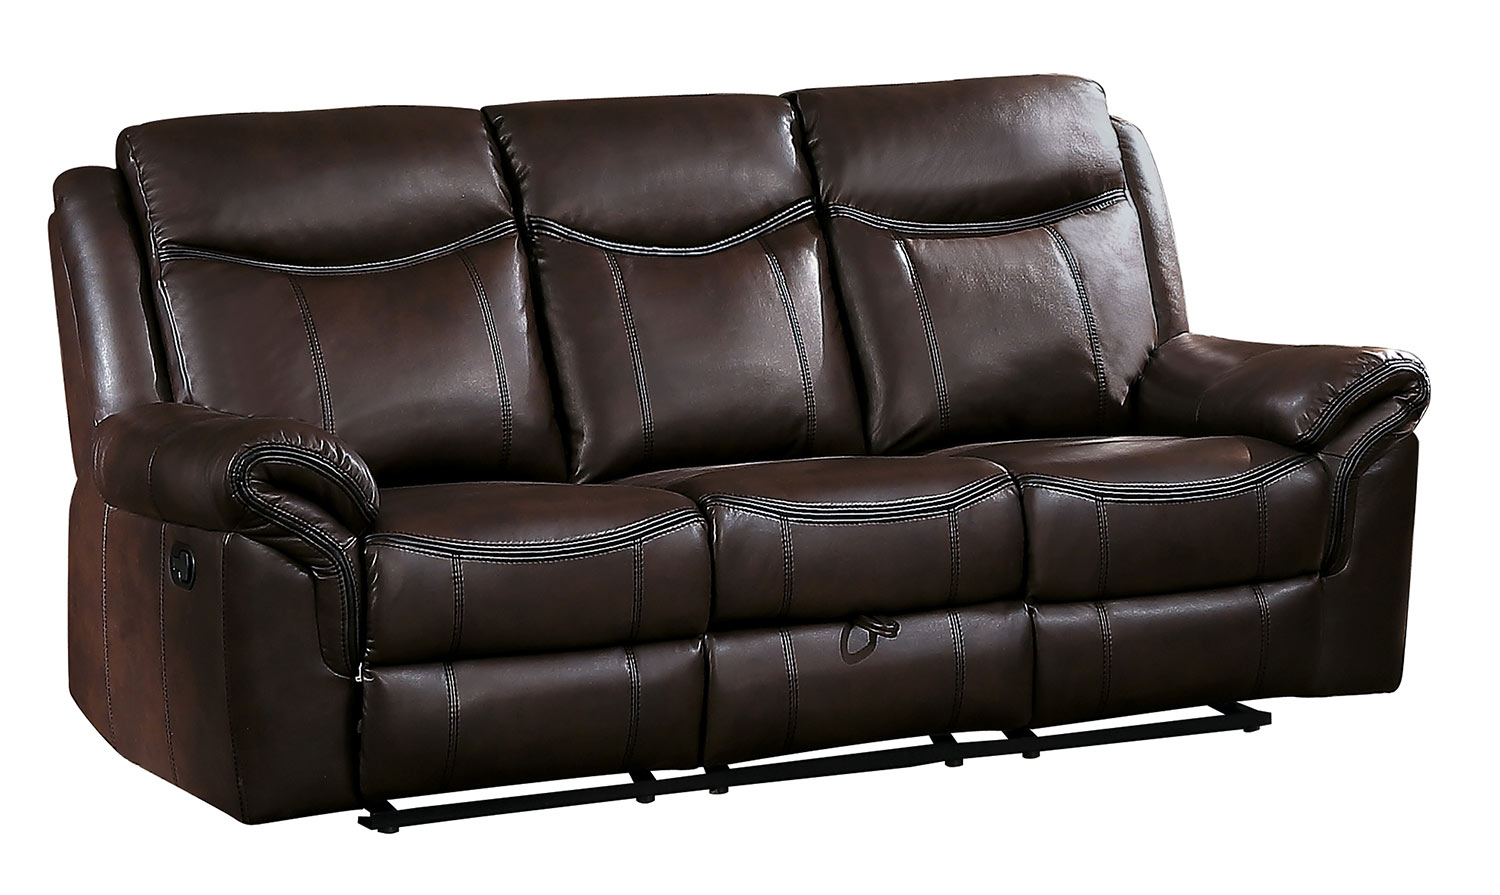 Homelegance Aram Double Reclining Sofa With Drop Down